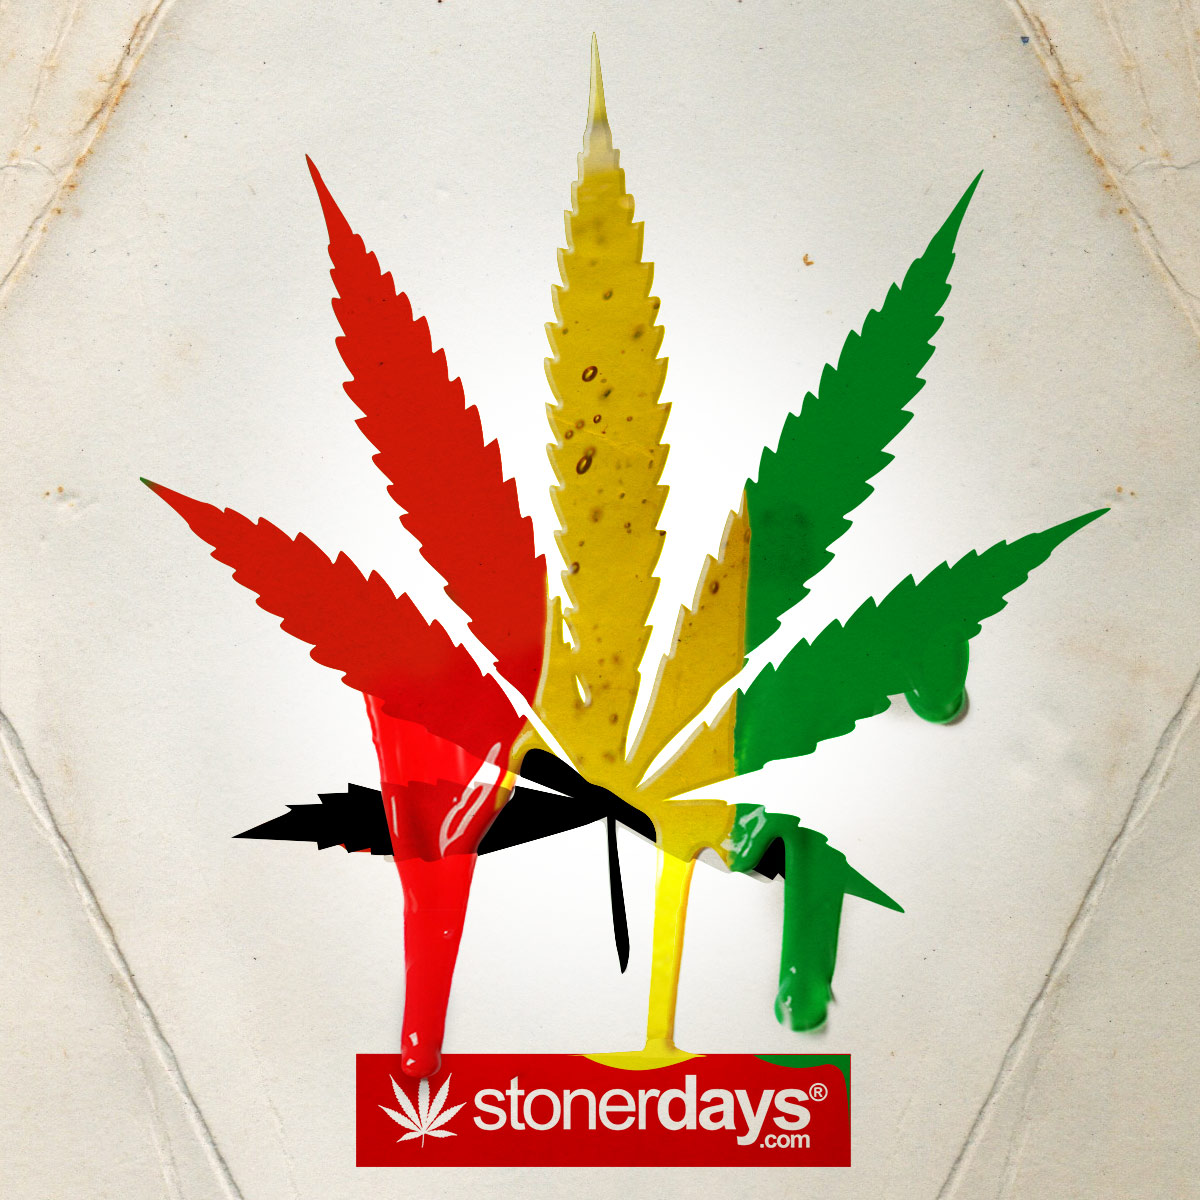 RASTA 420 STONERDAYS RASTA. Mobile Wallpaper for Stoners   Stoner Pictures   Stoner Blog